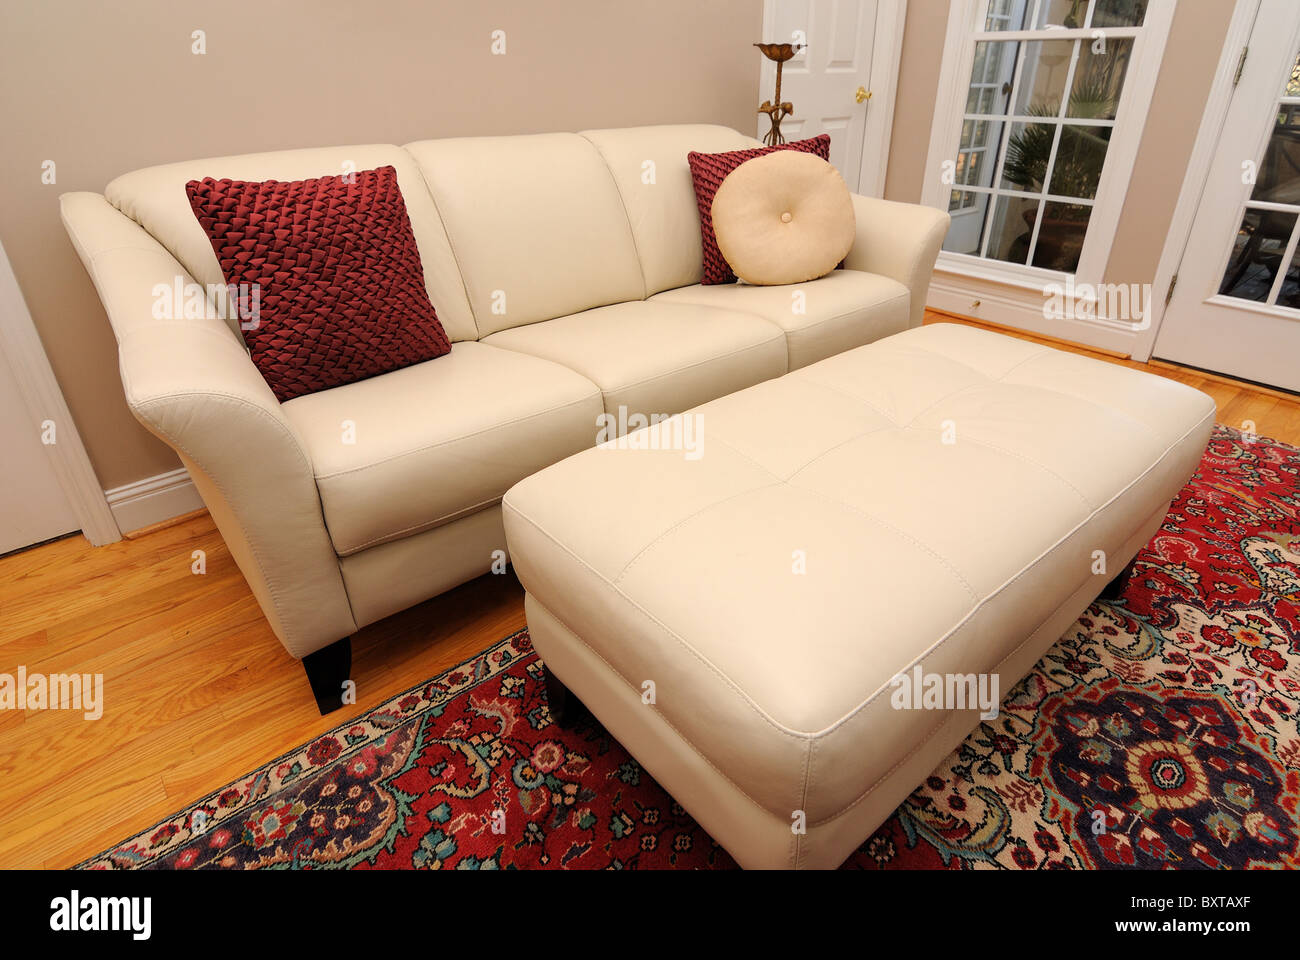 Contemporary Living Room Interior with sofa. - Stock Image